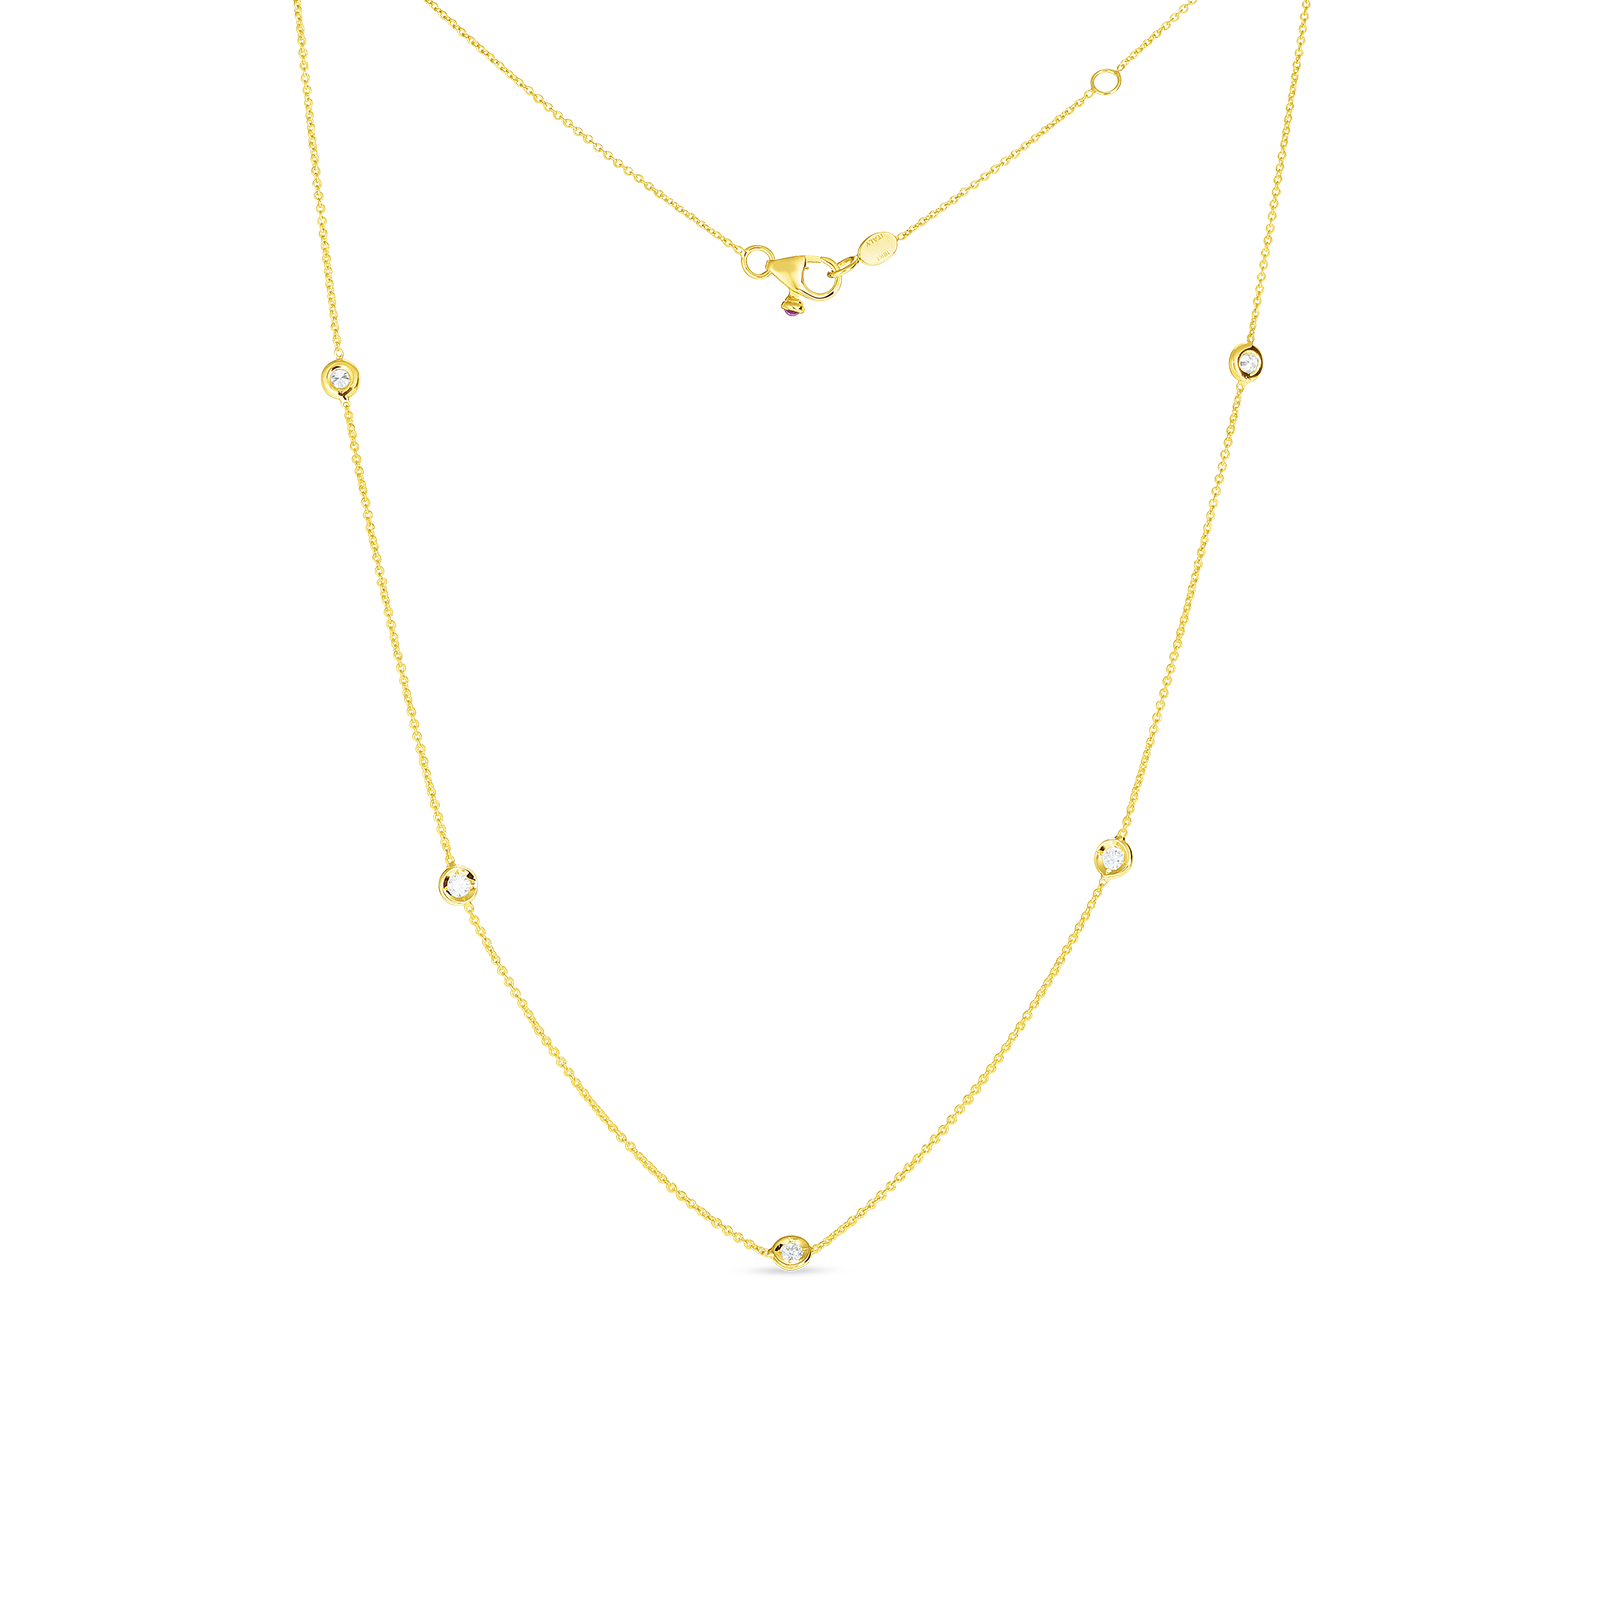 18K Yellow Gold Five Diamond Station Necklace